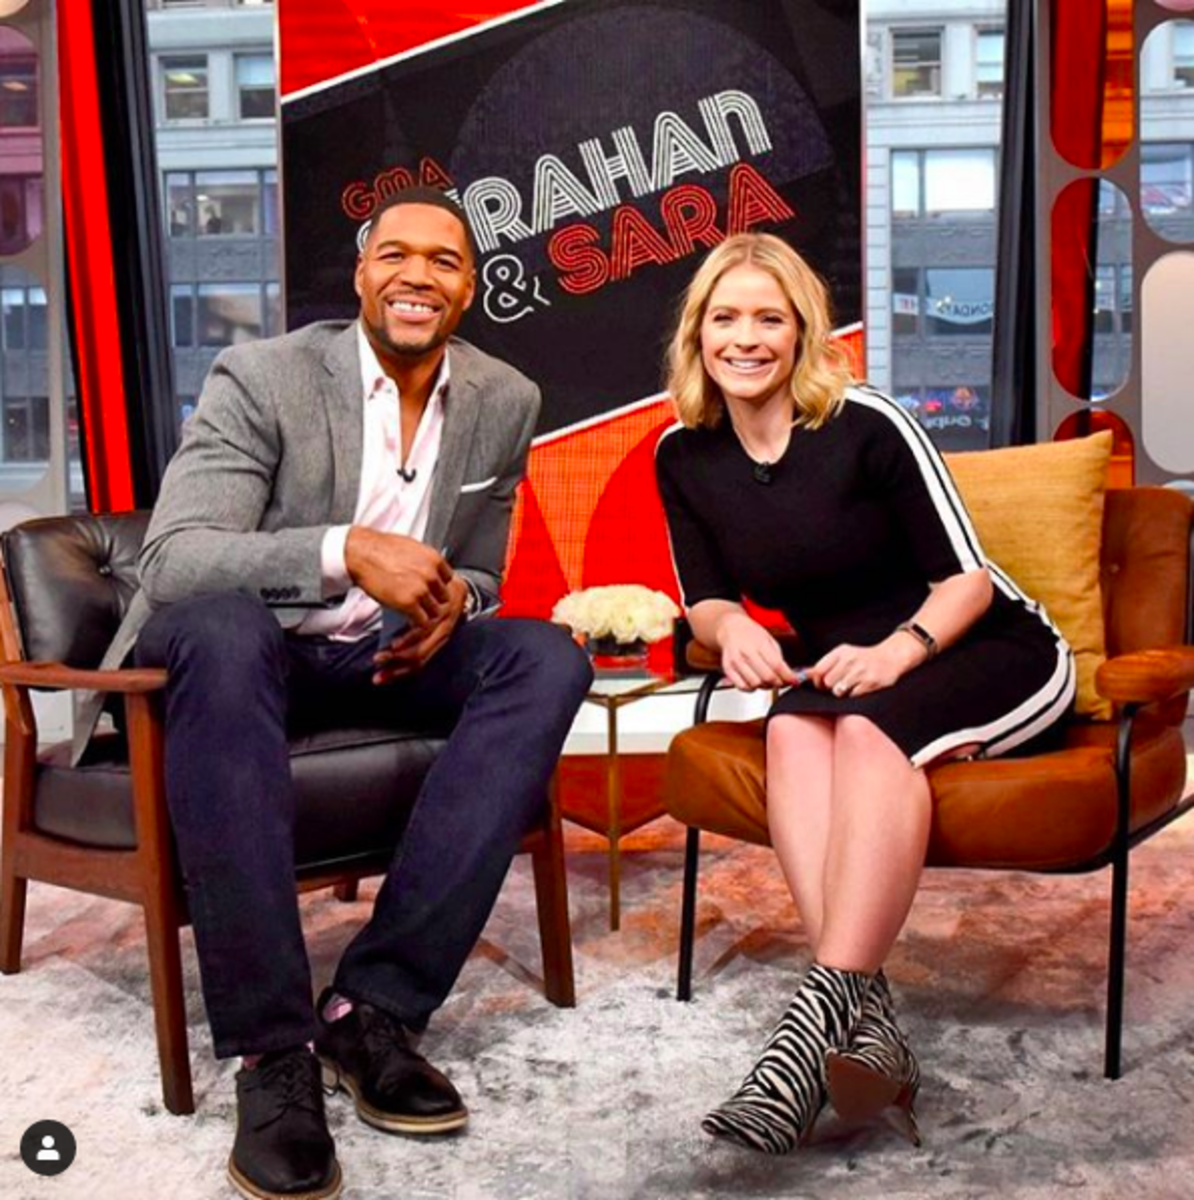 Gma Latest News Update: ABC Rebrands GMA Day To Strahan And Sara